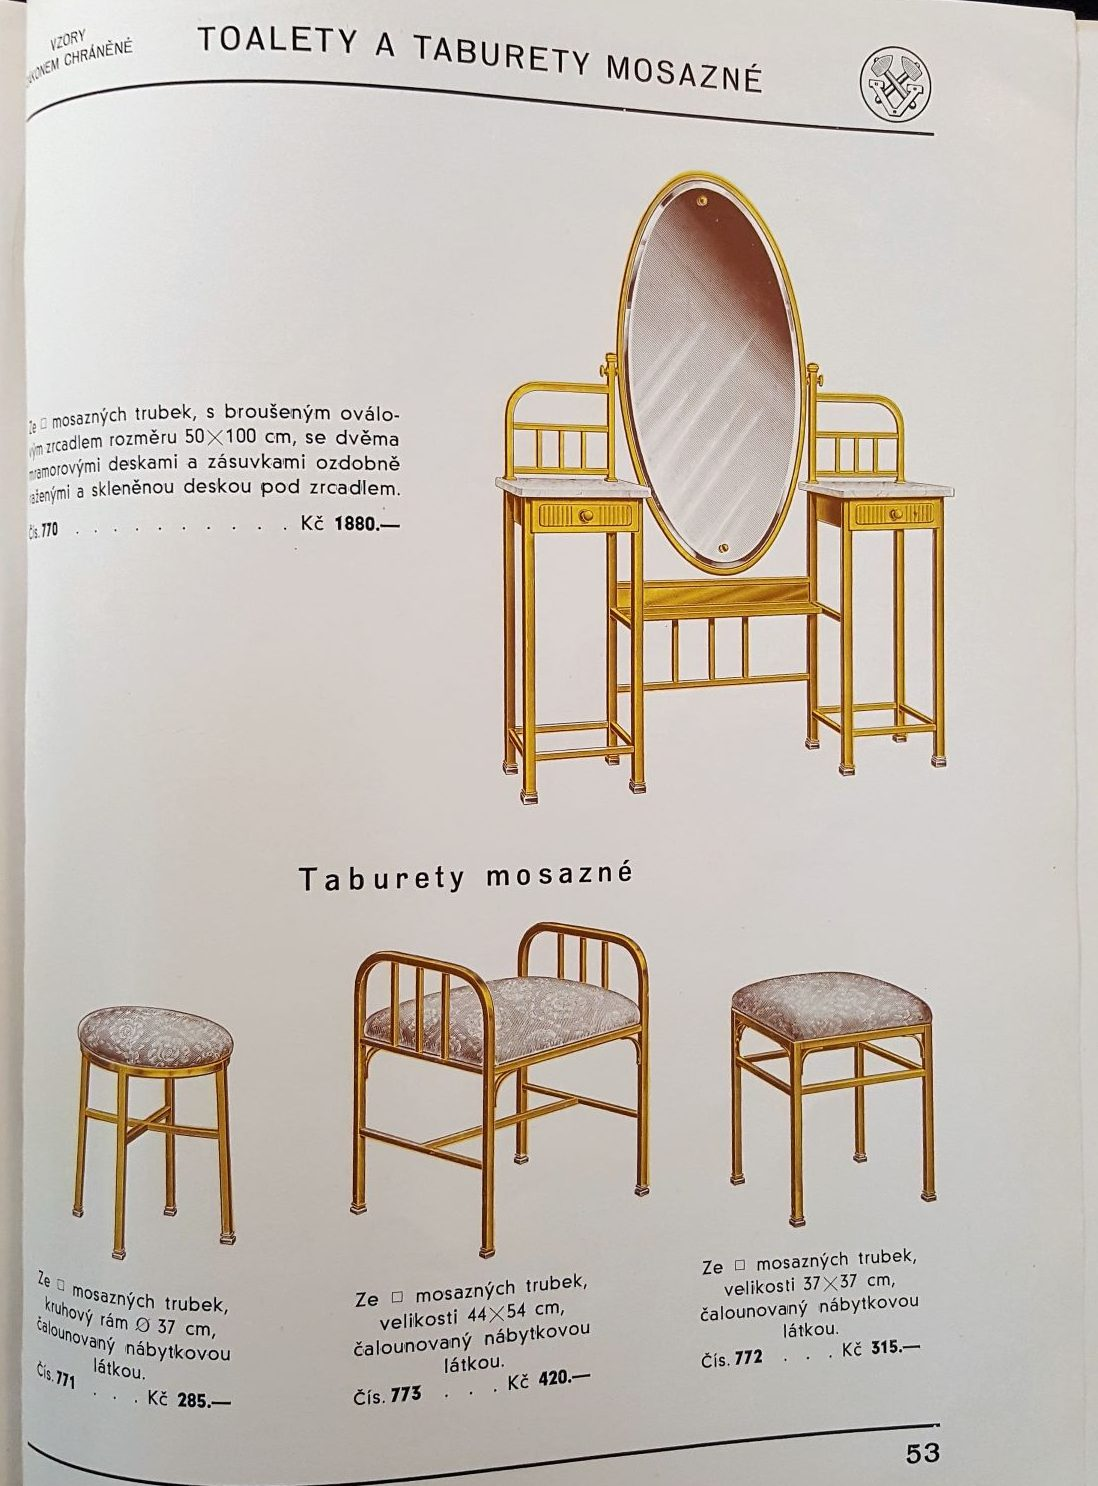 Image features tubular steel dressing tables with gold finishes. Pleasescroll down to see the blog post about this object.